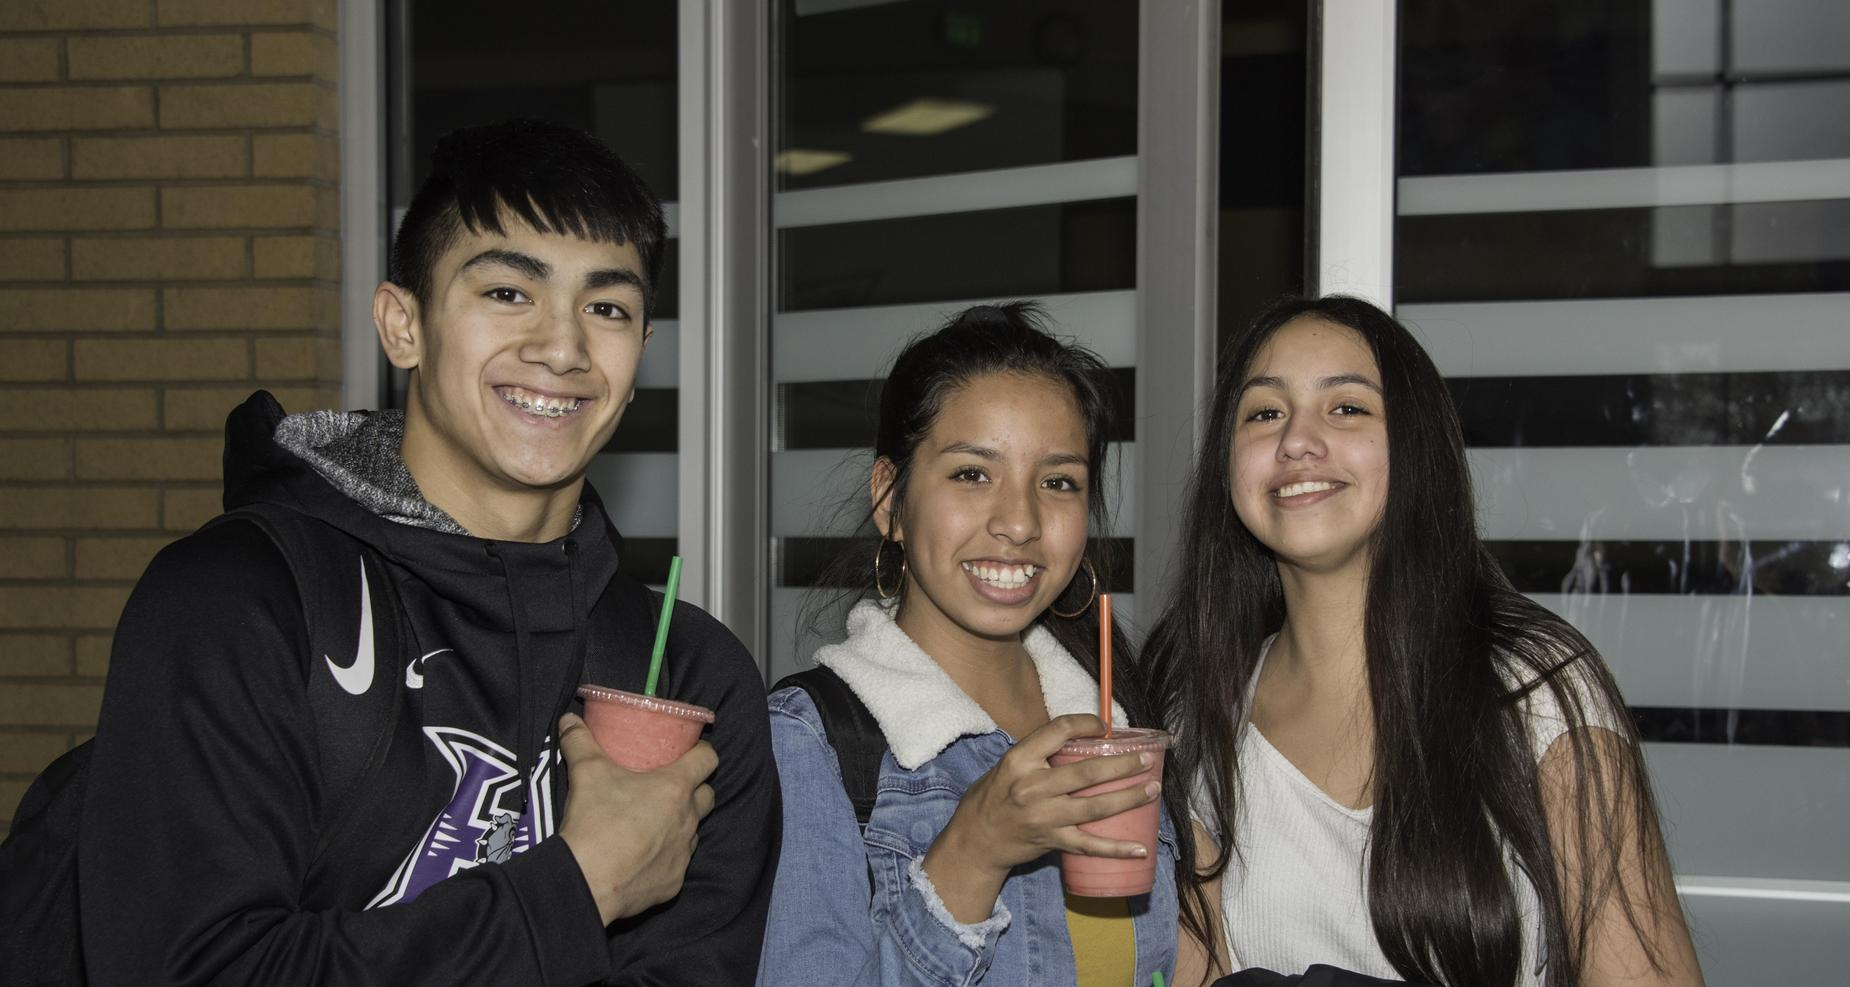 students smiling and holding smoothie drinks